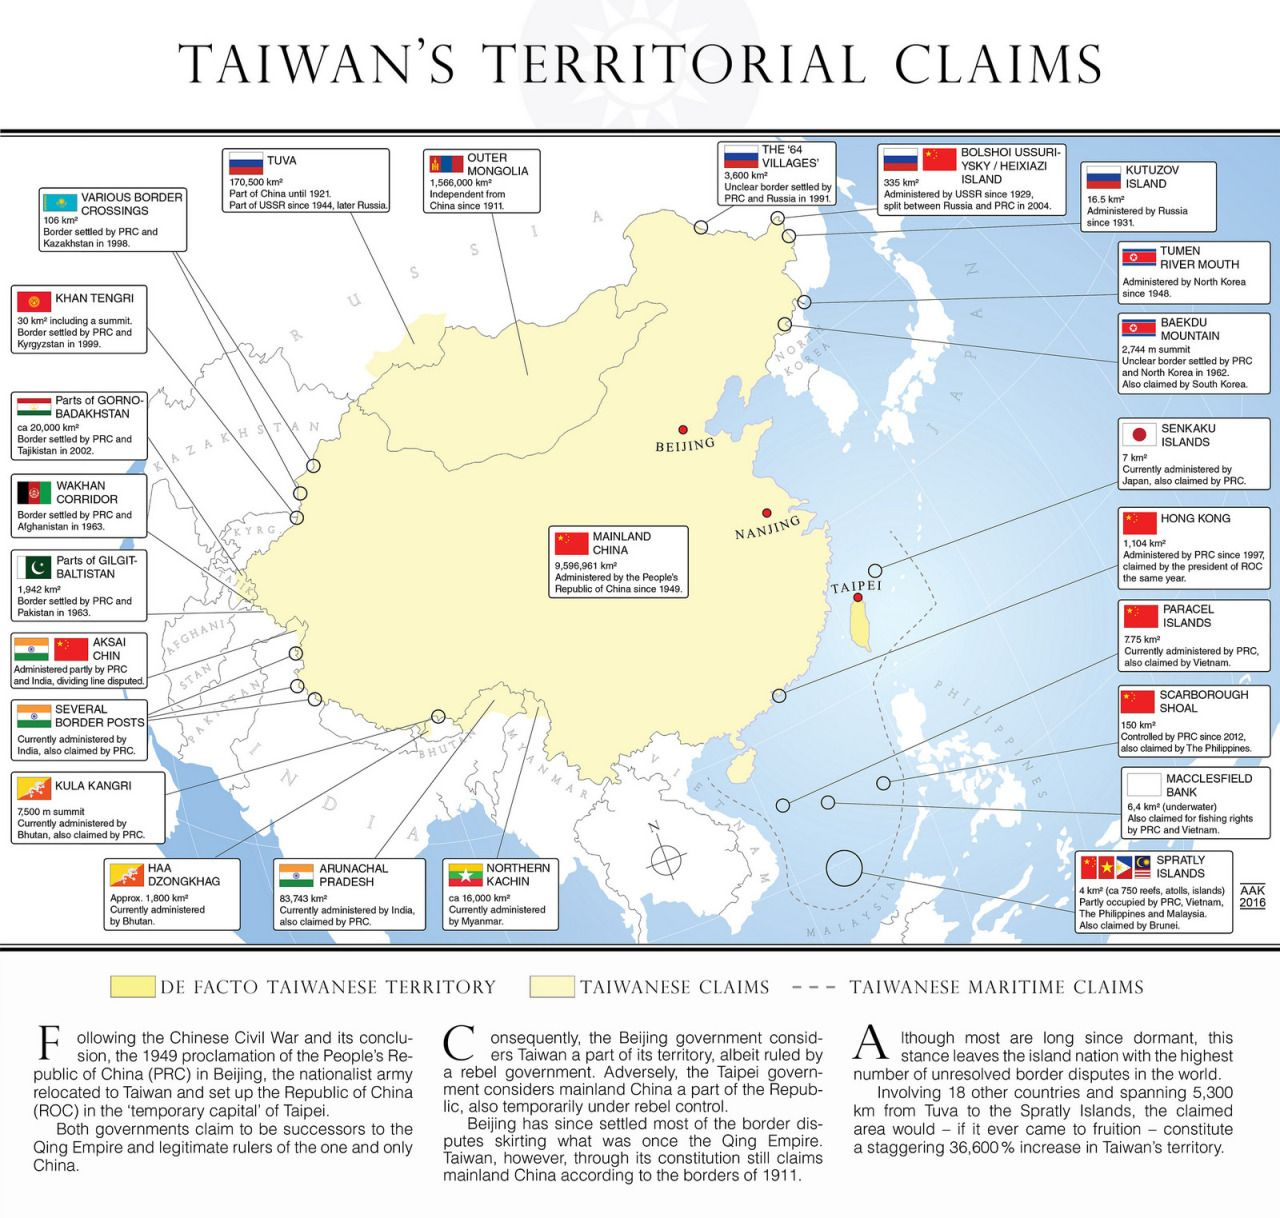 Taiwan China Map.Taiwan S Territorial Claims Taiwan China Asia Pinterest Map